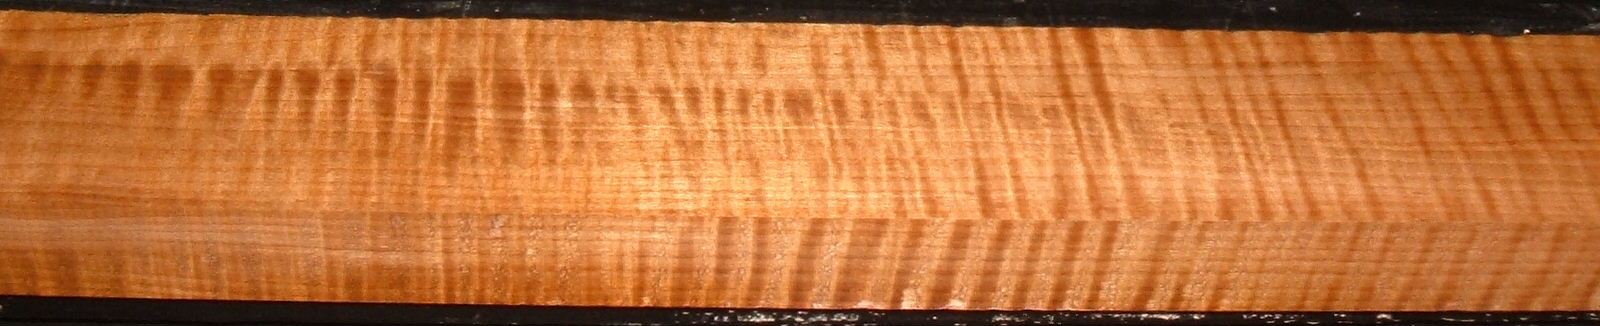 QRM2101-14JK, 1-1/4x2-5/8x46, Quartersawn Roasted Curly Maple